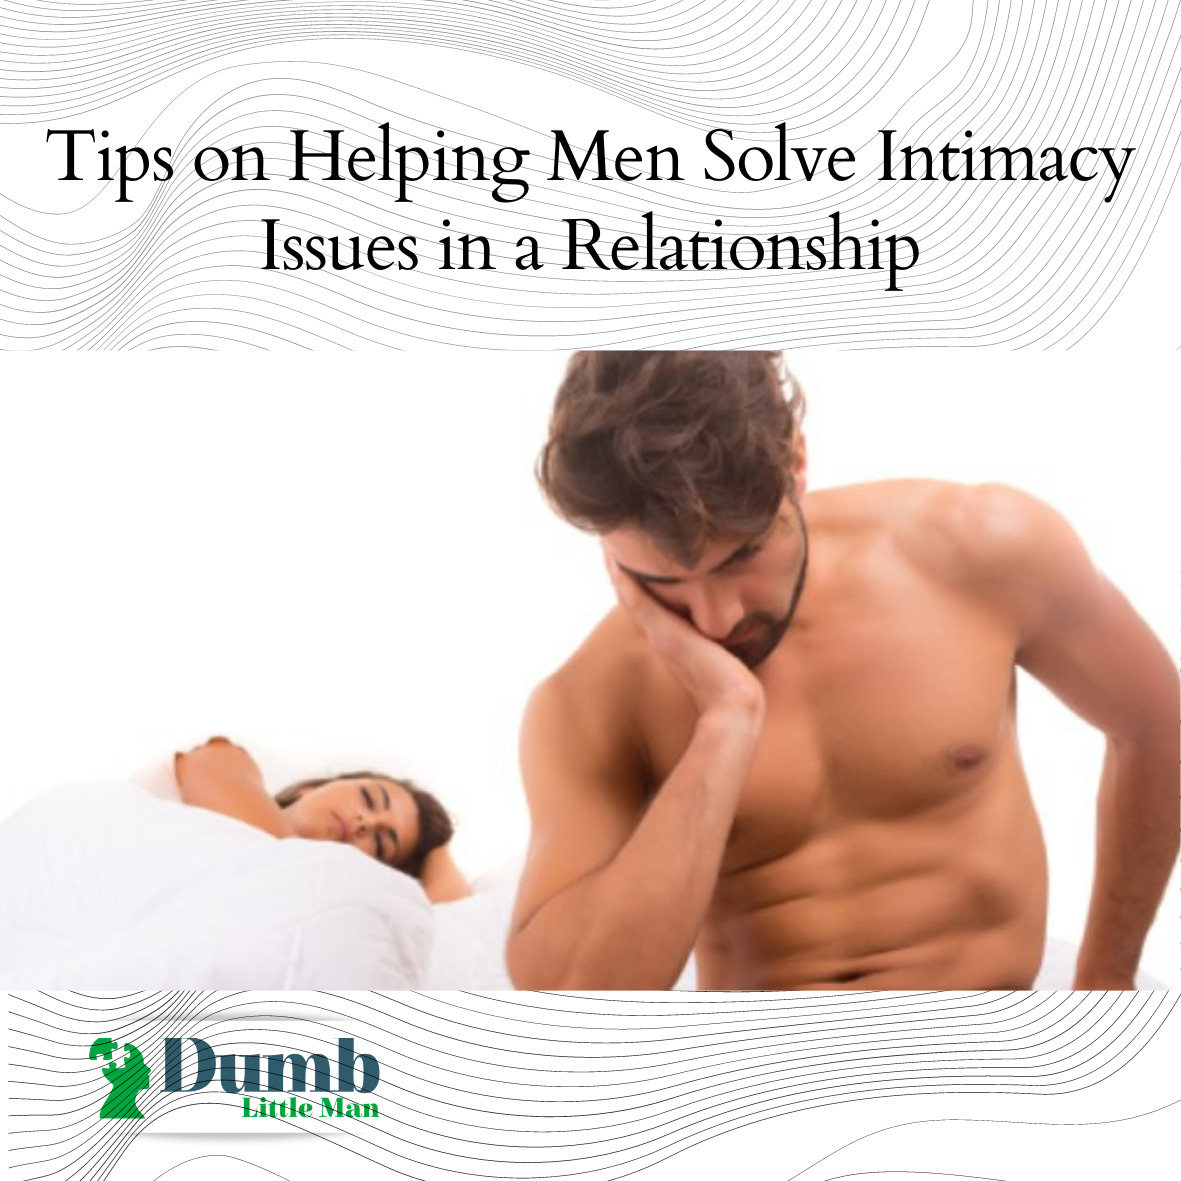 tips-on-helping-men-solve-intimacy-issues-in-a-relationship